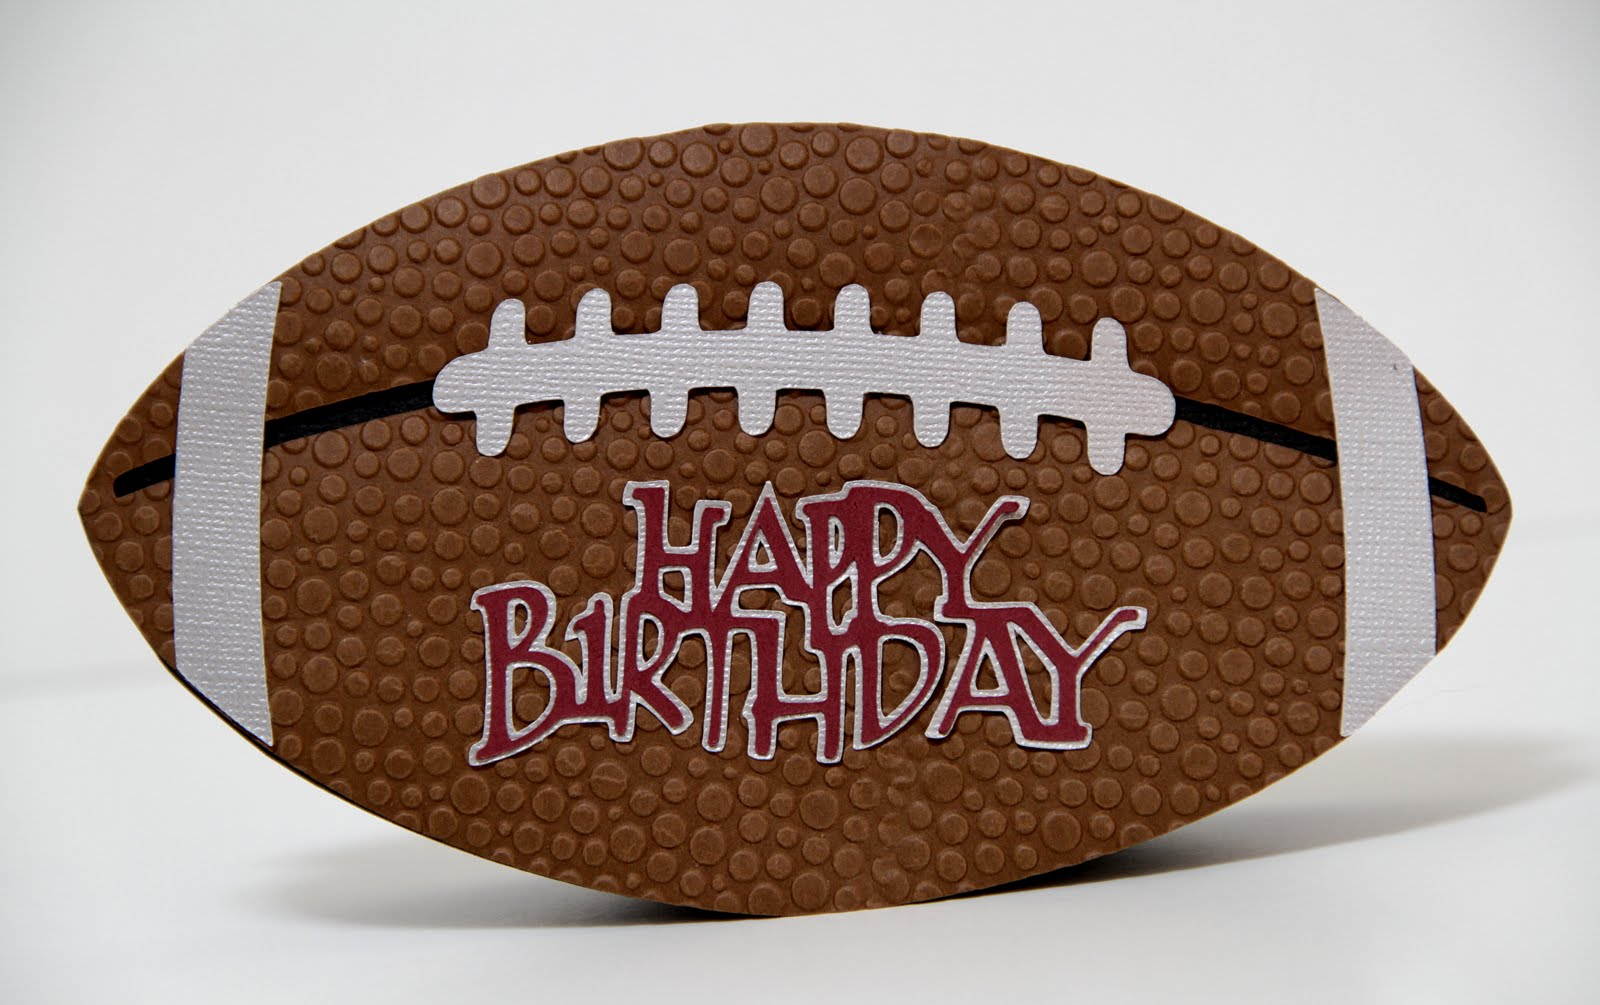 Birthday Cake For A Patriots Fan You Tube